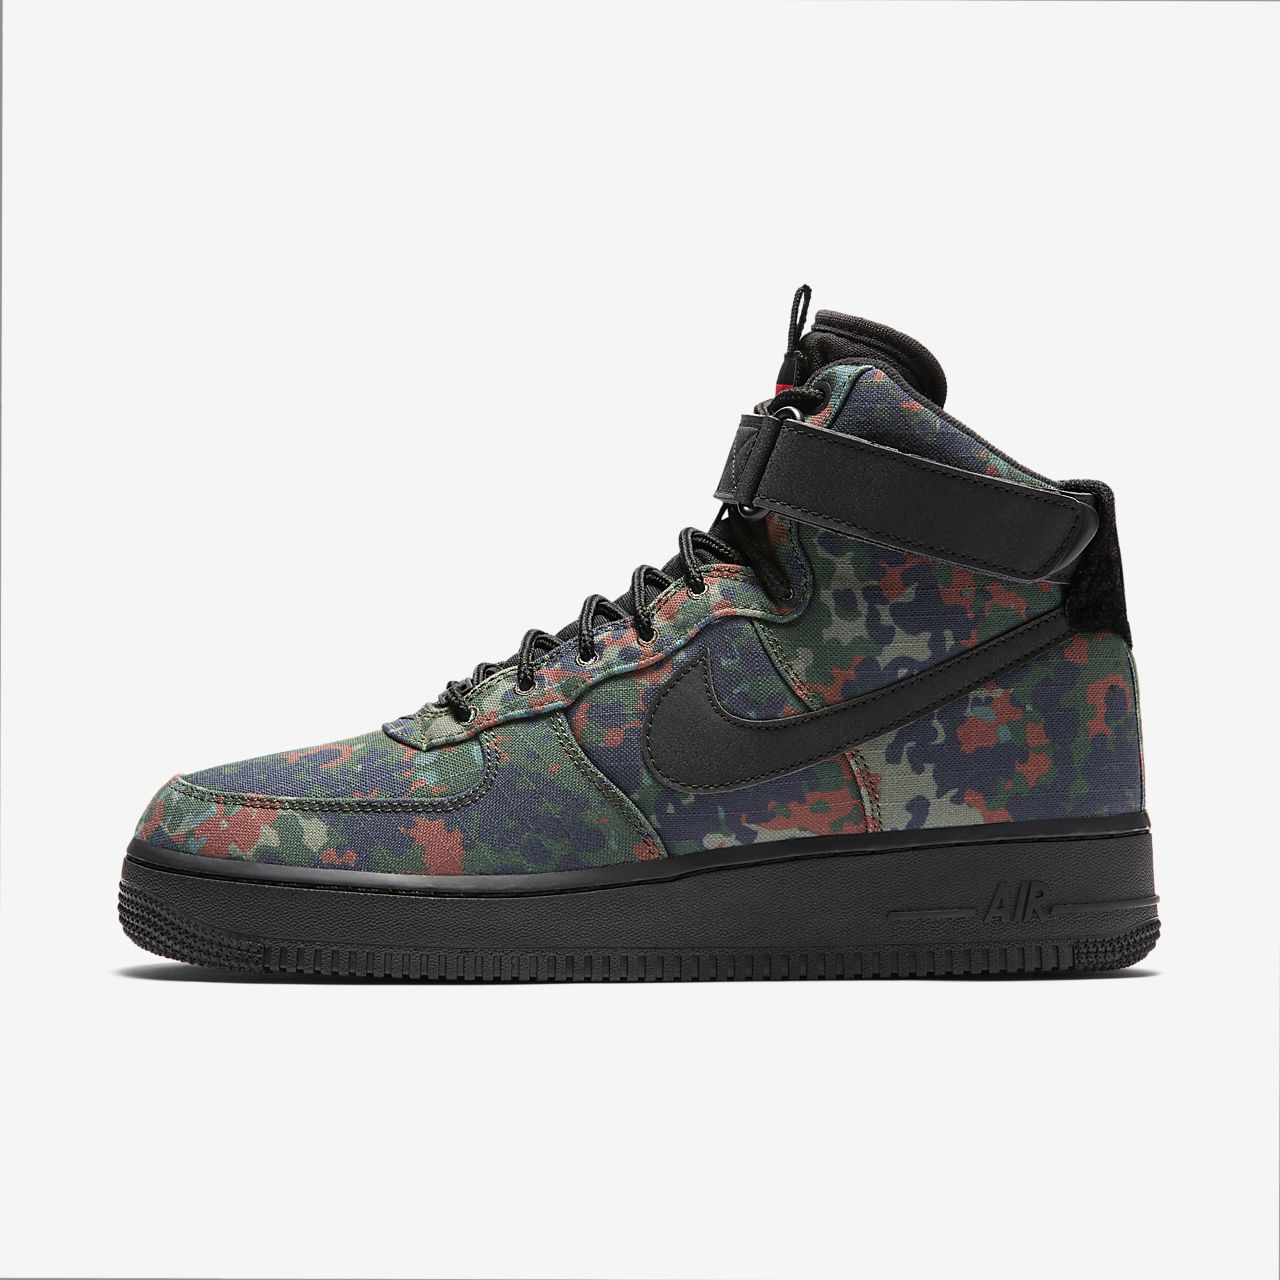 Nike Air Force 1 High '07 LV8 Men's Shoe